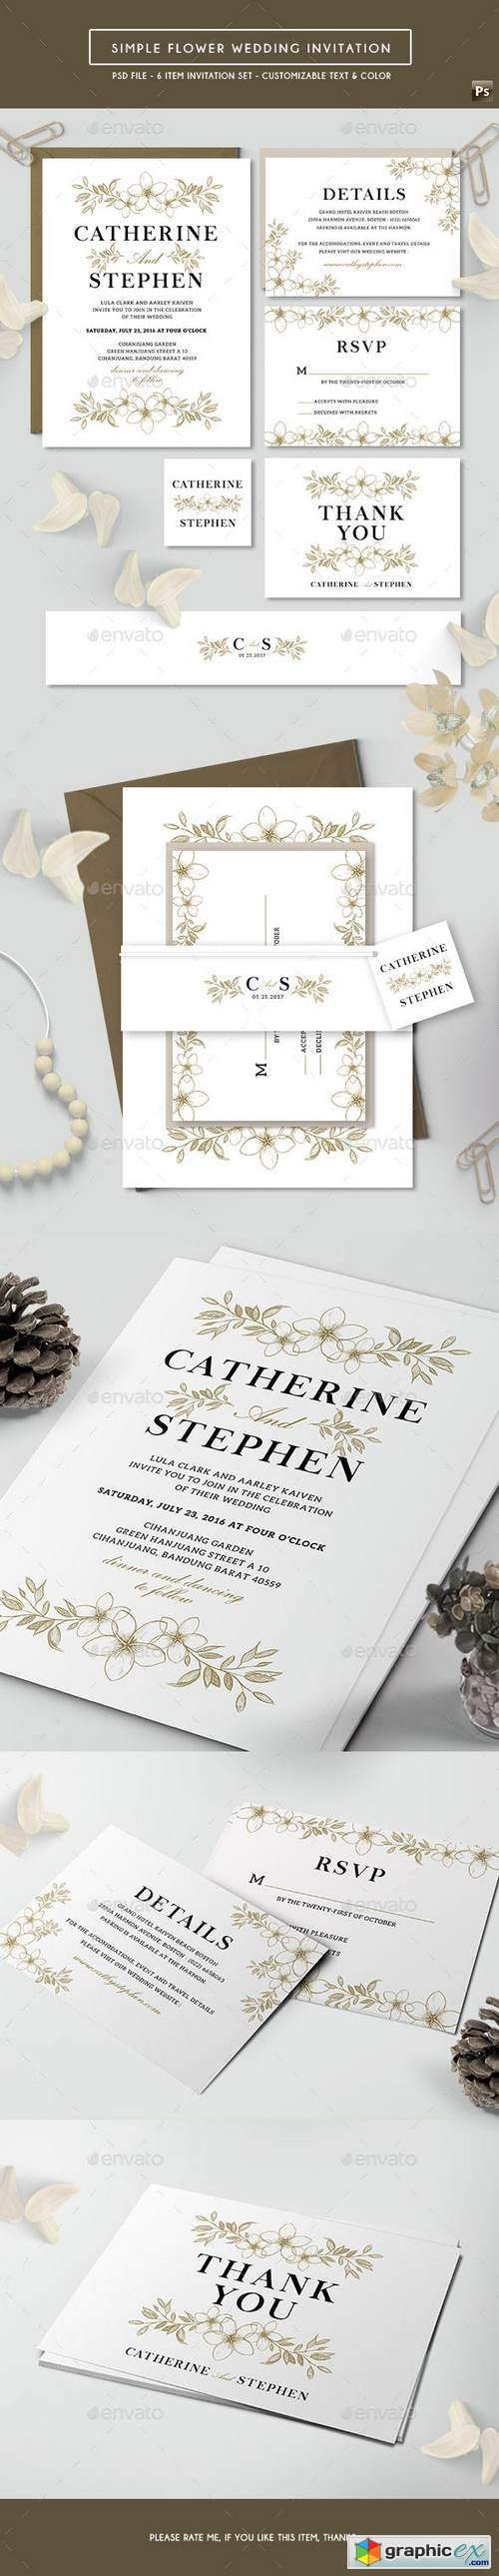 Simple Flower Wedding Invitation